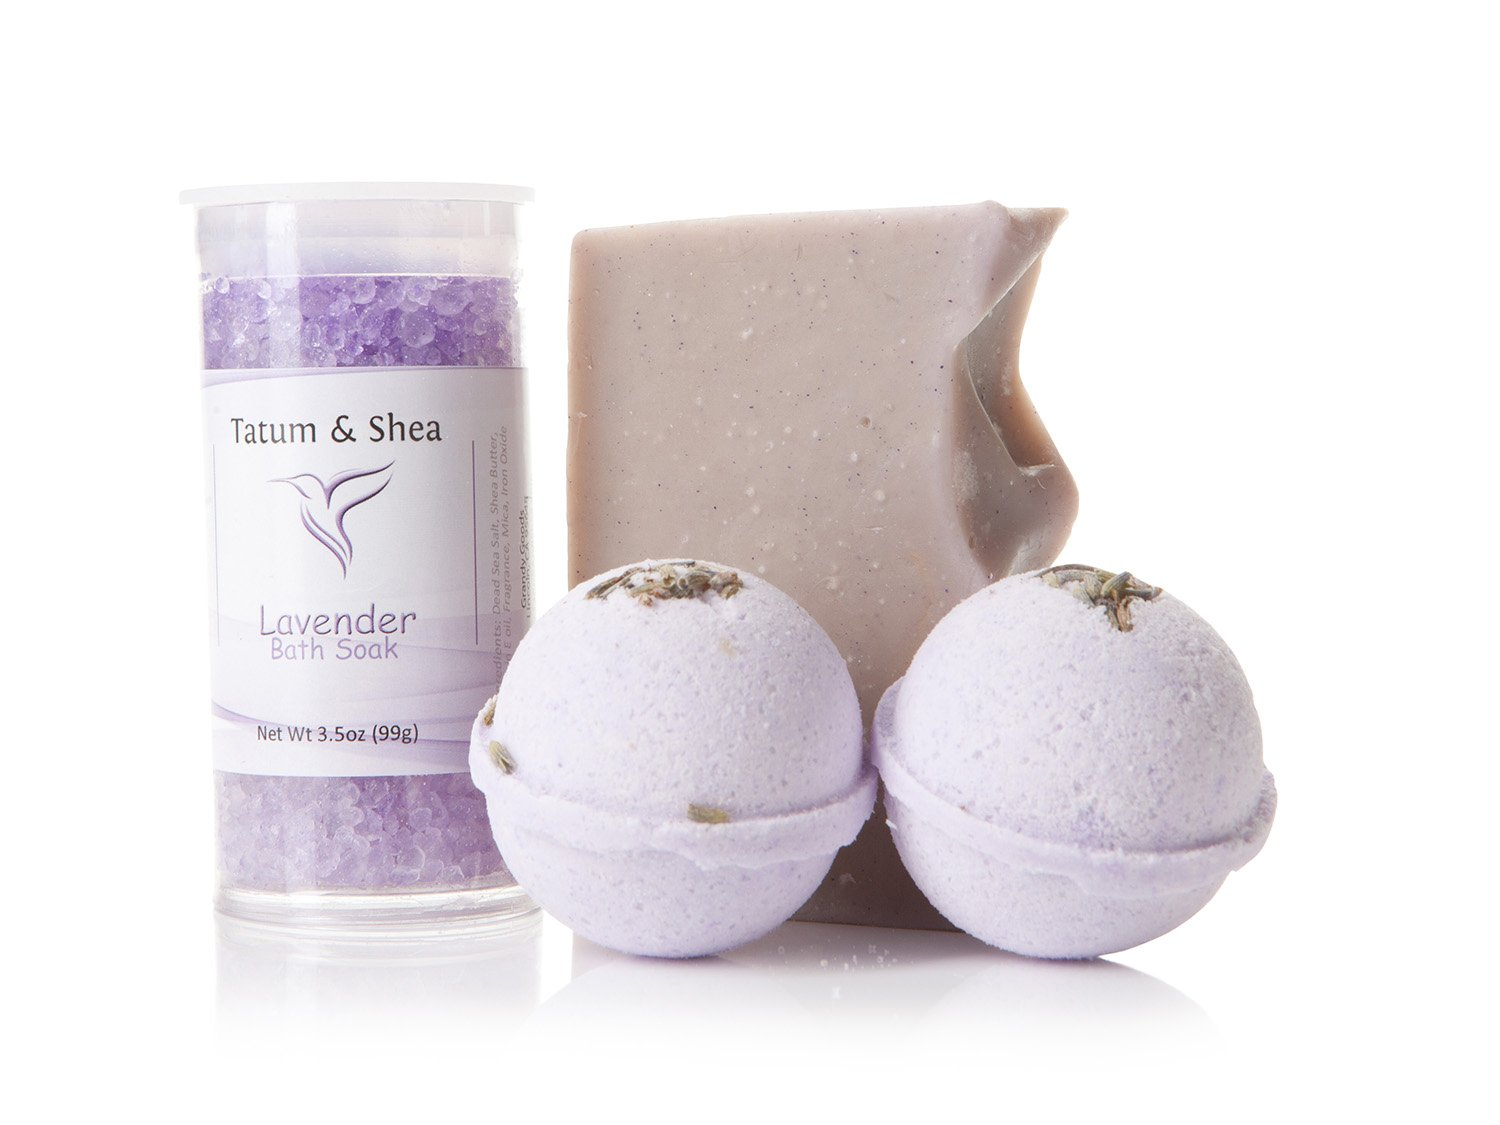 Bath/Spa Gift Set | Natural Handmade Lavender Soap Bar, Lavender Scented Dead Sea Bath Salts, 2 Lavender Fizzy Bath Bombs | Gift Boxed | Made in the USA by Tatum & Shea (Lavender)